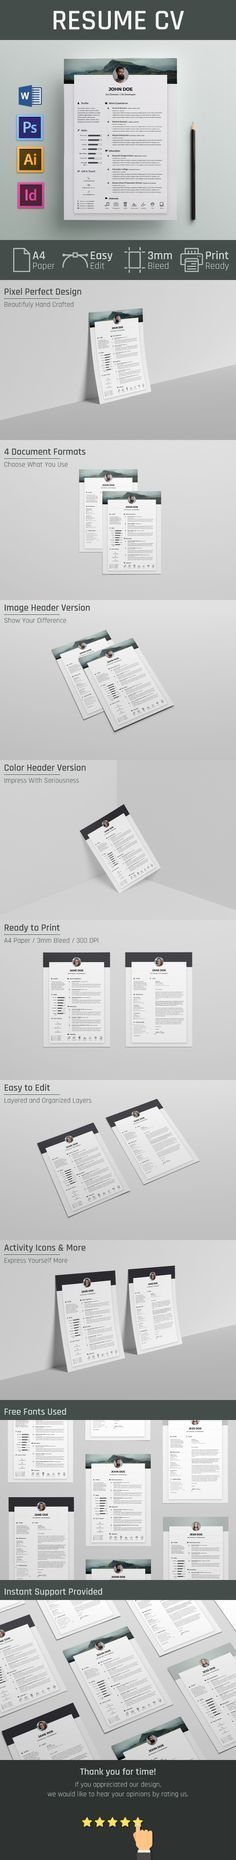 """Check out this @Behance project: """"Free Resume / CV Template"""" https://www.behance.net/gallery/46622737/Free-Resume-CV-Template"""